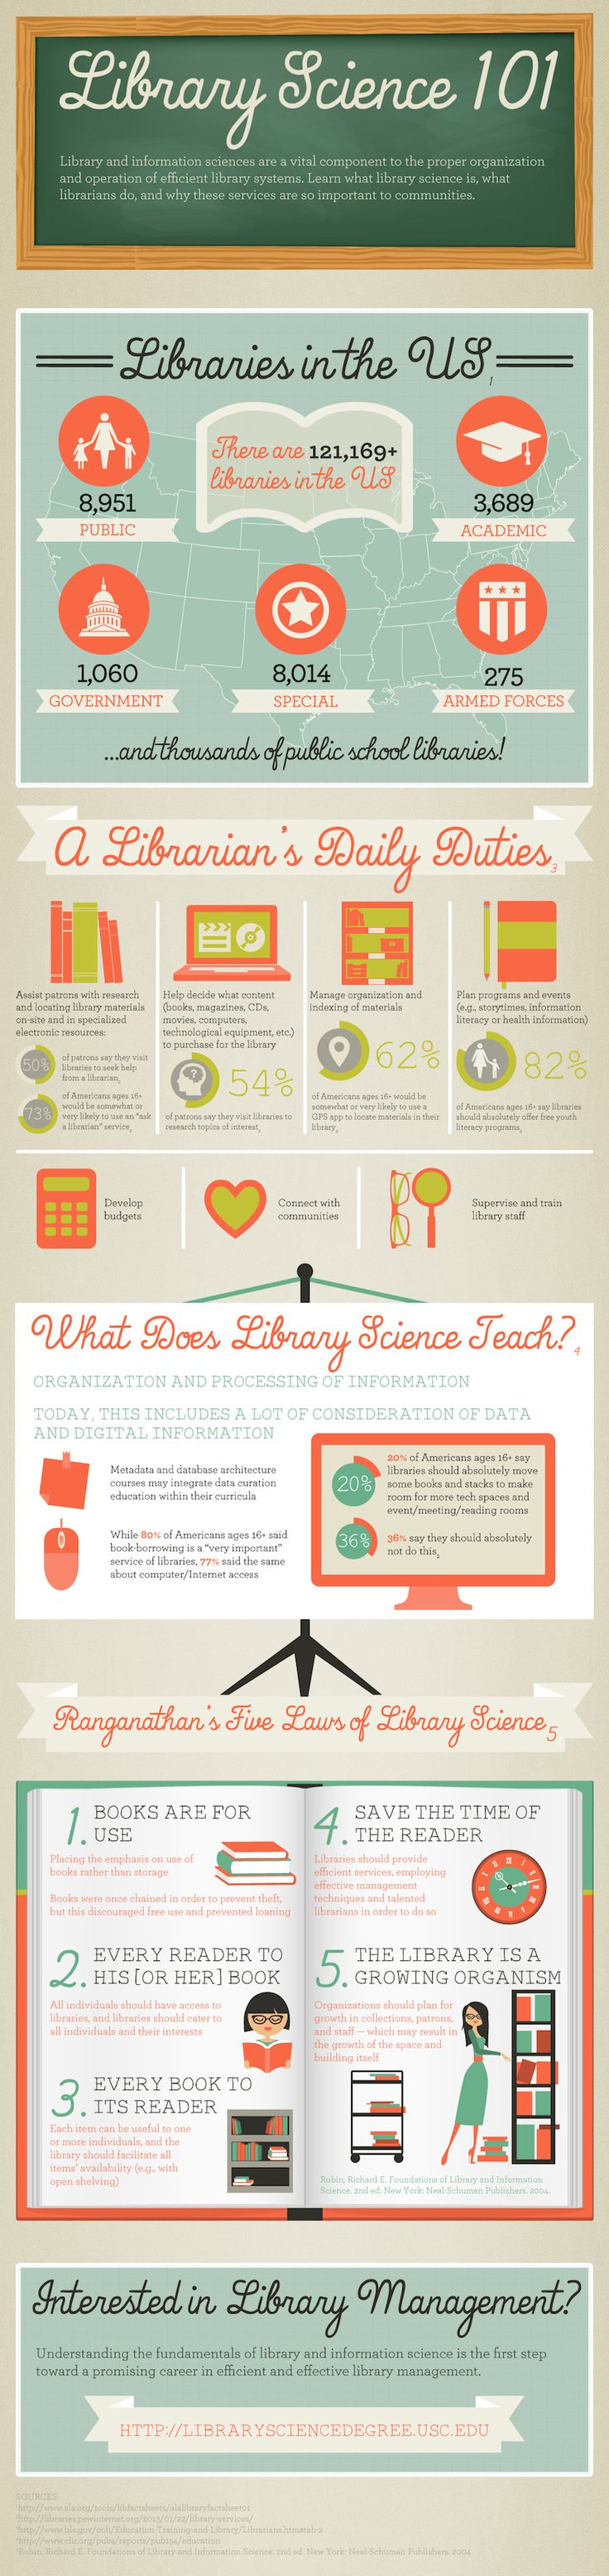 Library science 101 - this great #infographic explains what library science is, what librarians do, and why these services are important to communities.